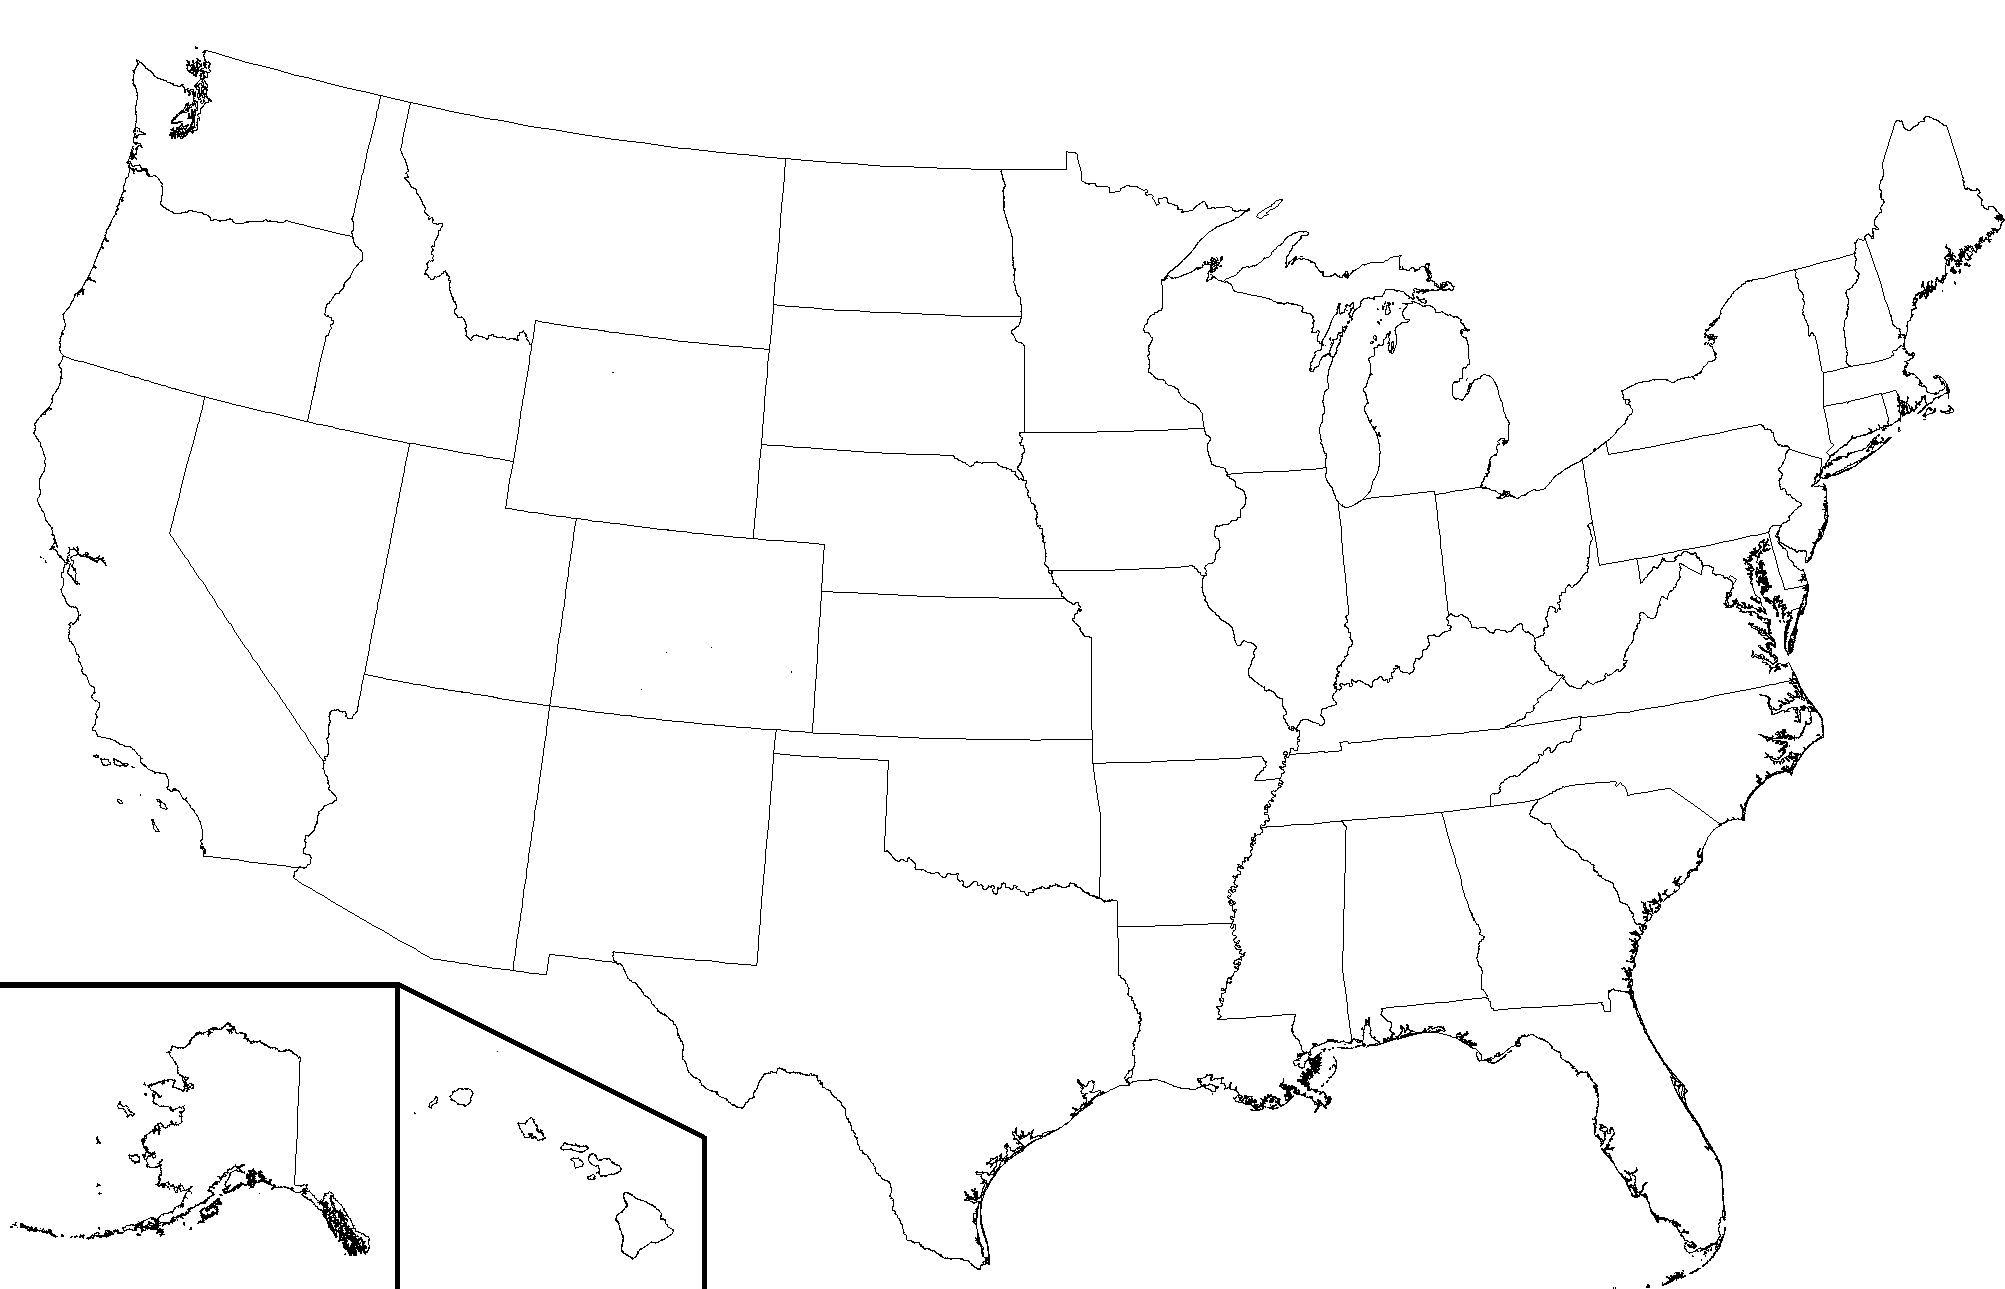 Blank Map Of Usa Transparent & PNG Clipart Free Download - YA-webdesign